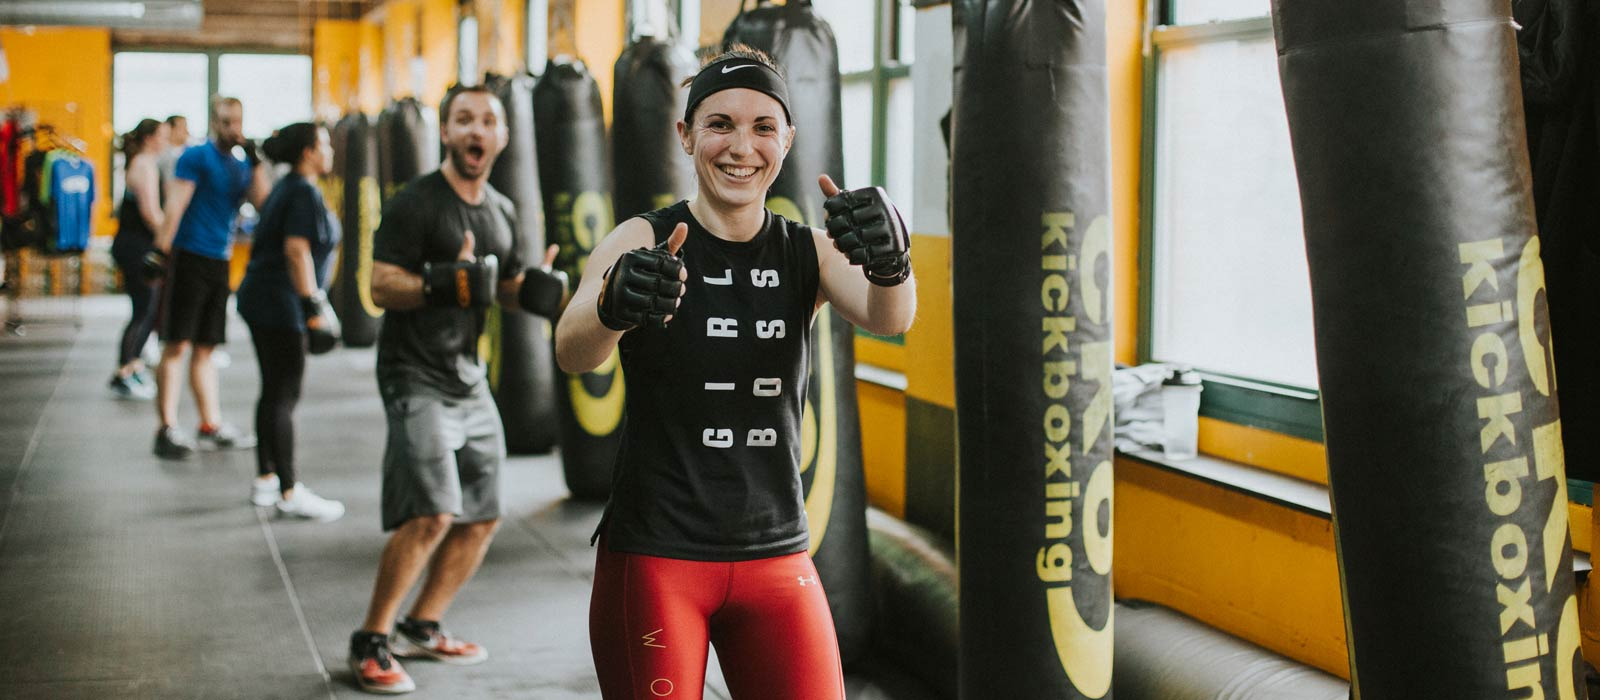 cko kickboxing, unleash the new you